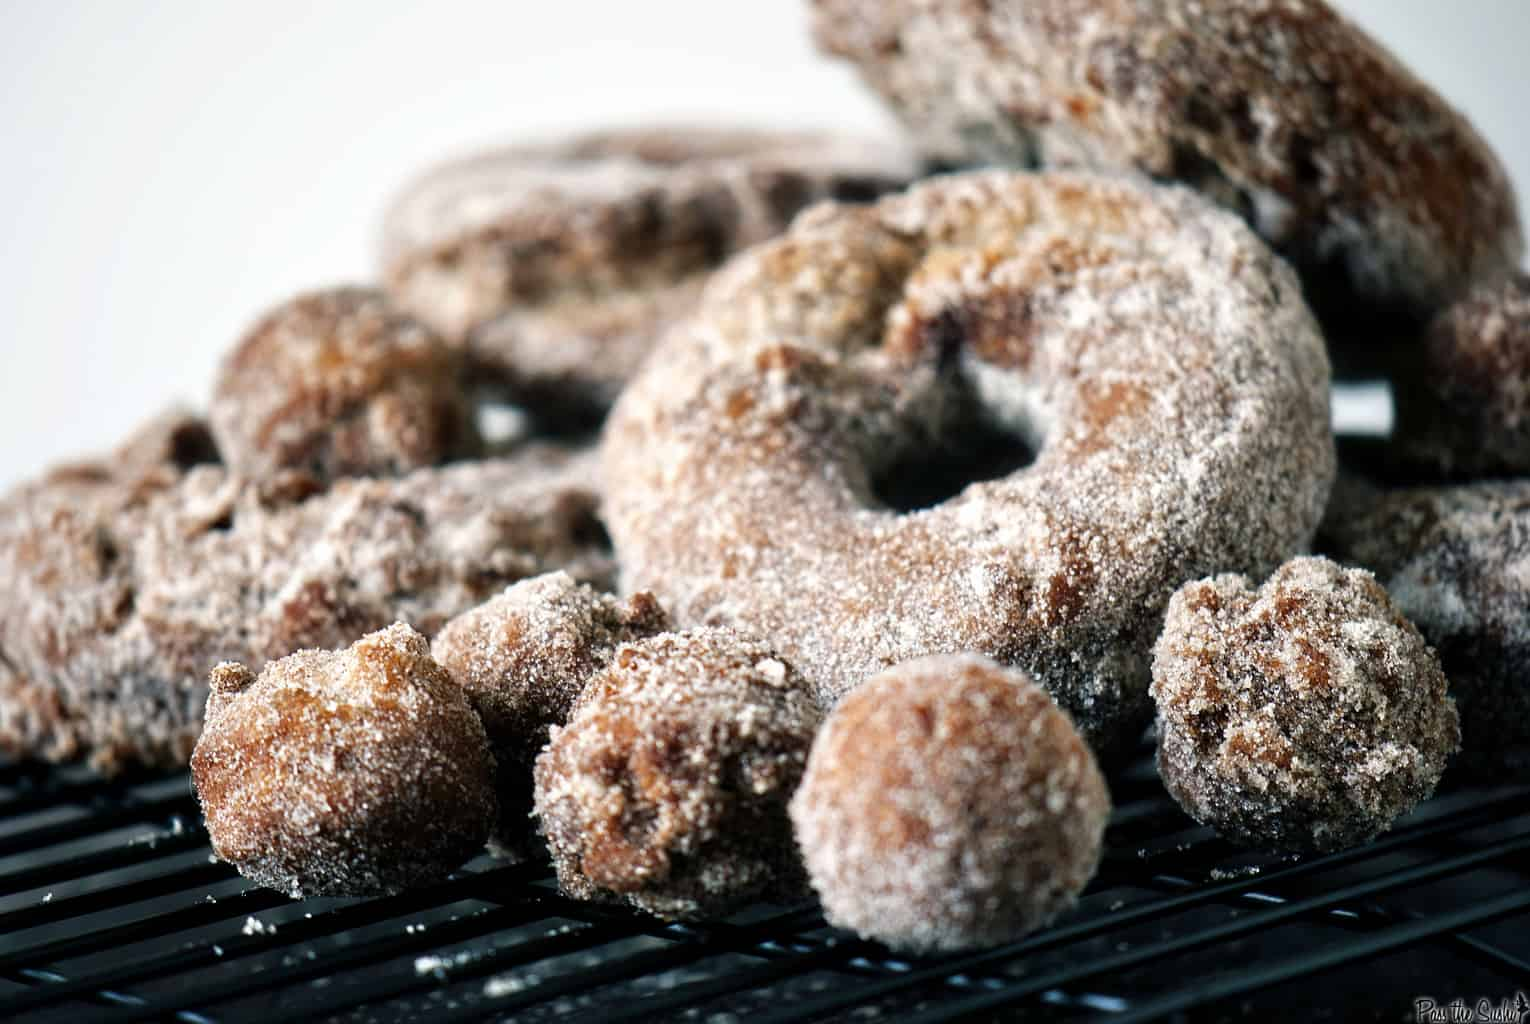 Items of Interest • Apple cider doughnuts. Fall noms!